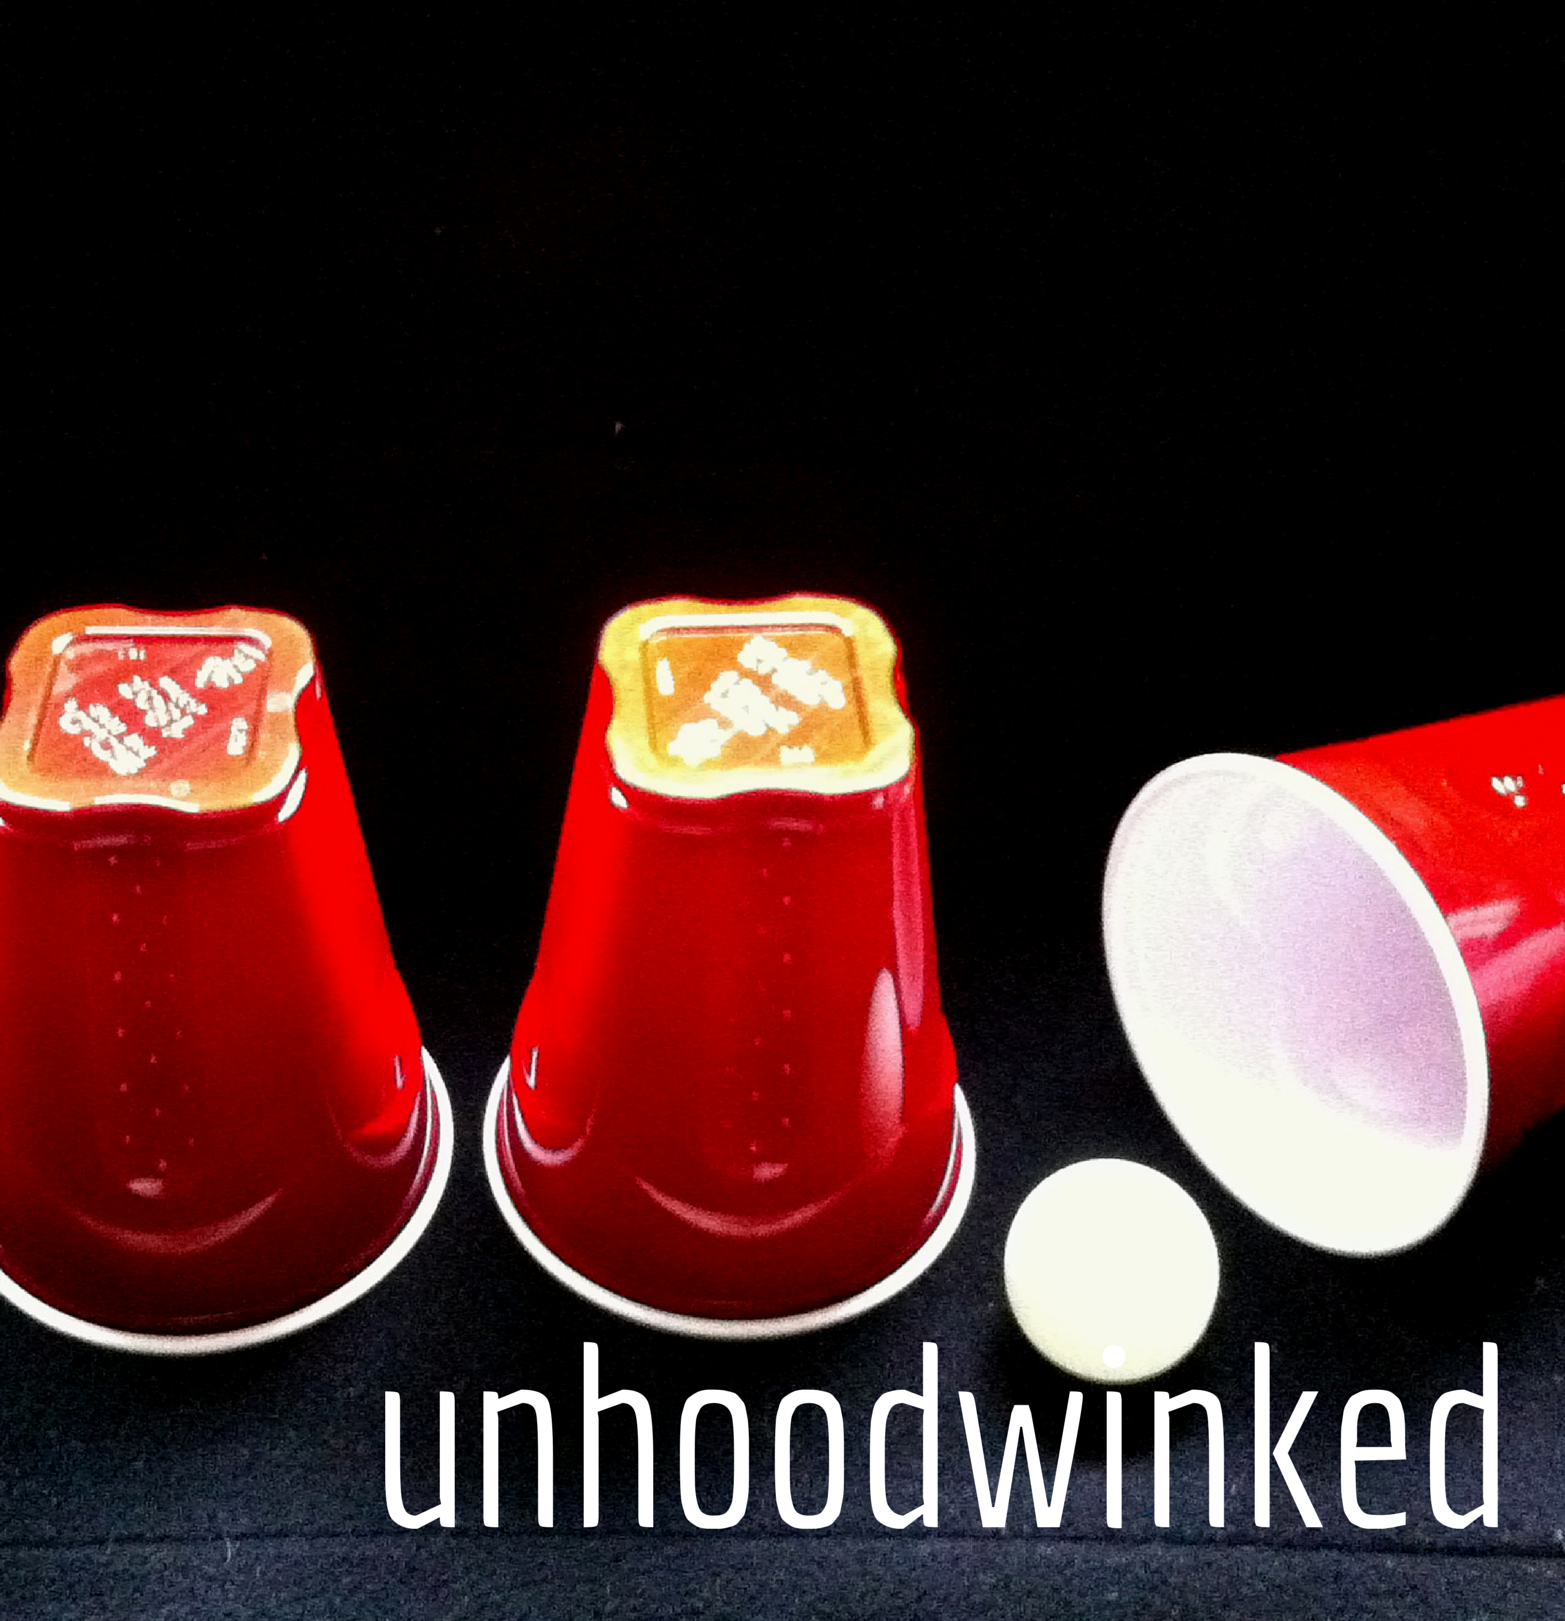 The unhoodwinked logo